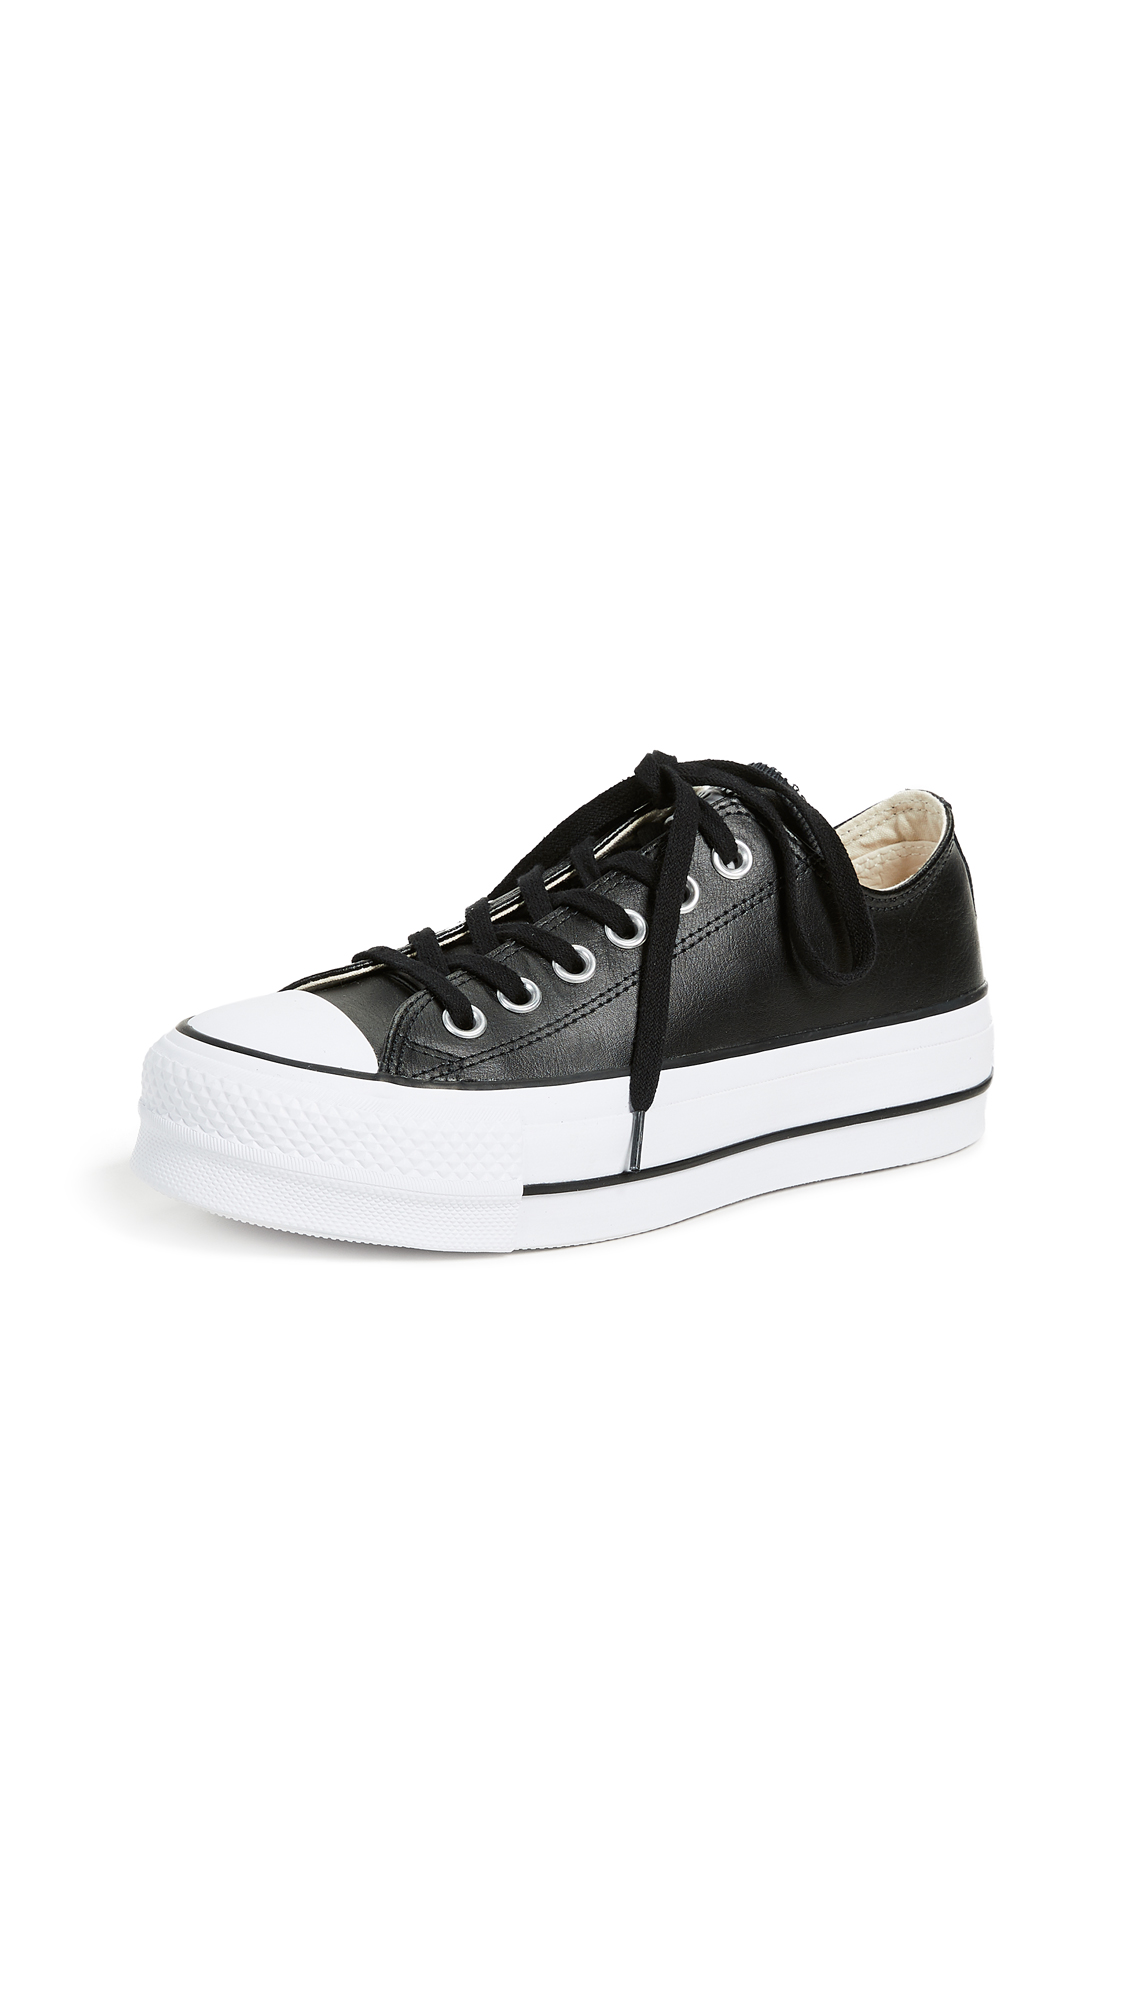 Converse Chuck All Star Lift Clean Ox Sneakers - Black/White